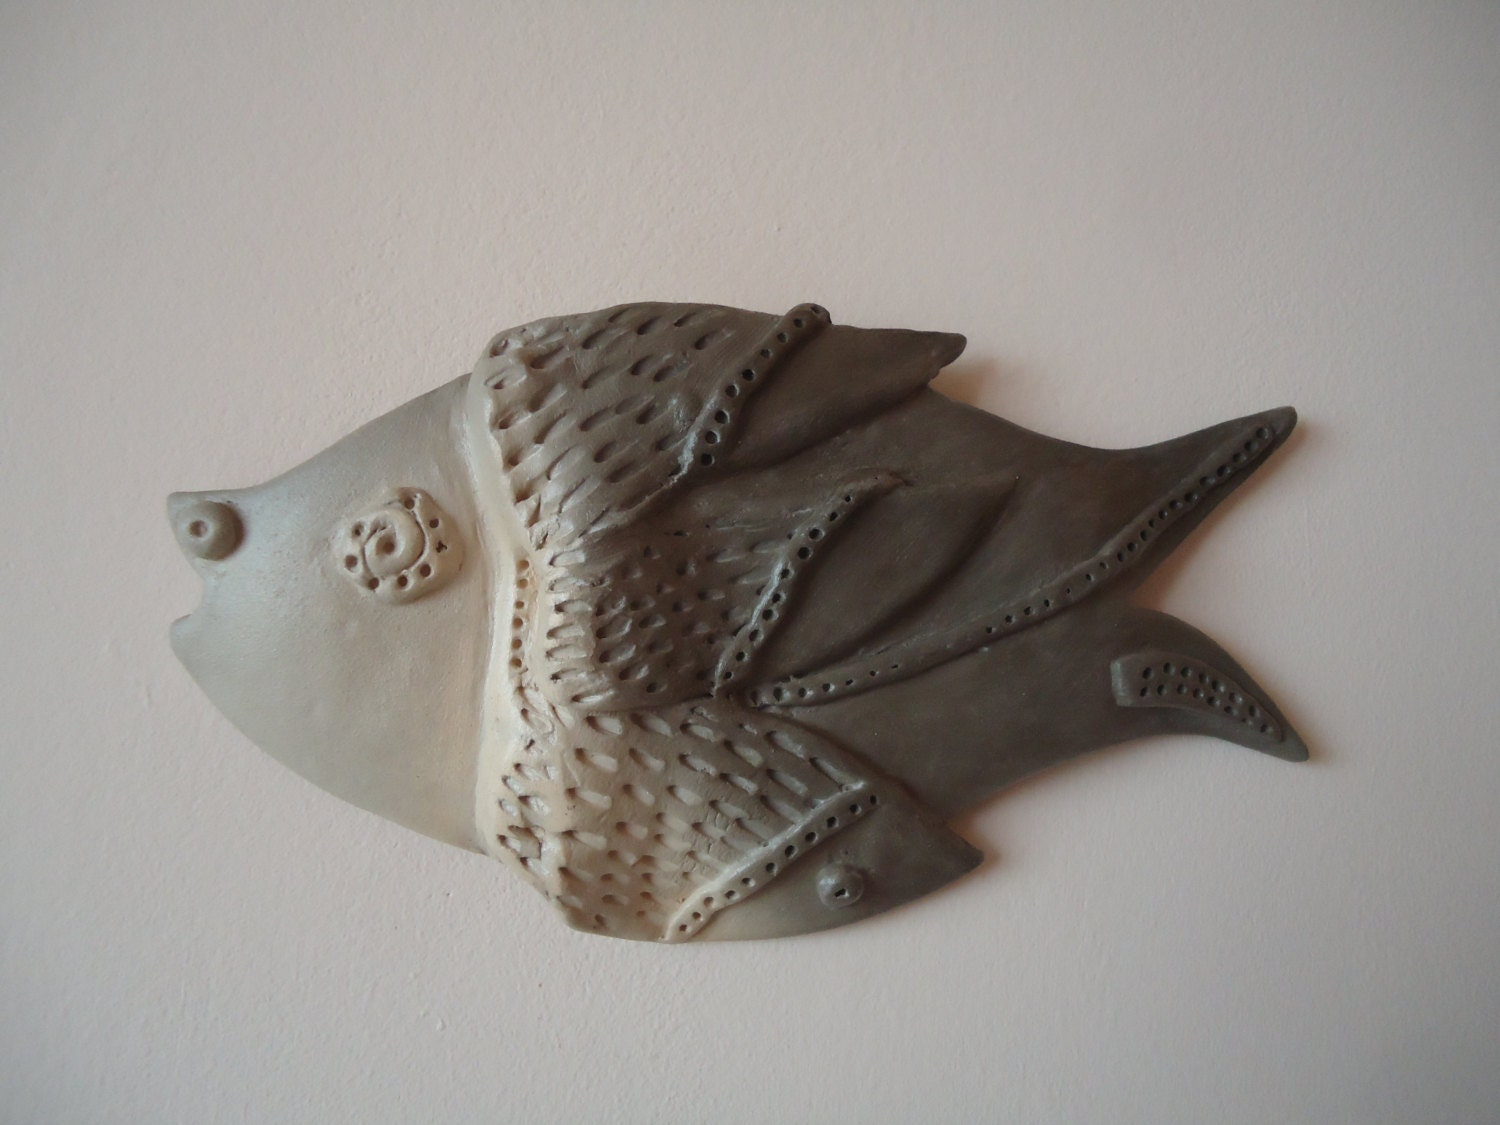 Ceramic fish wall art fish wall decor cute fish fish by for Fish wall decor